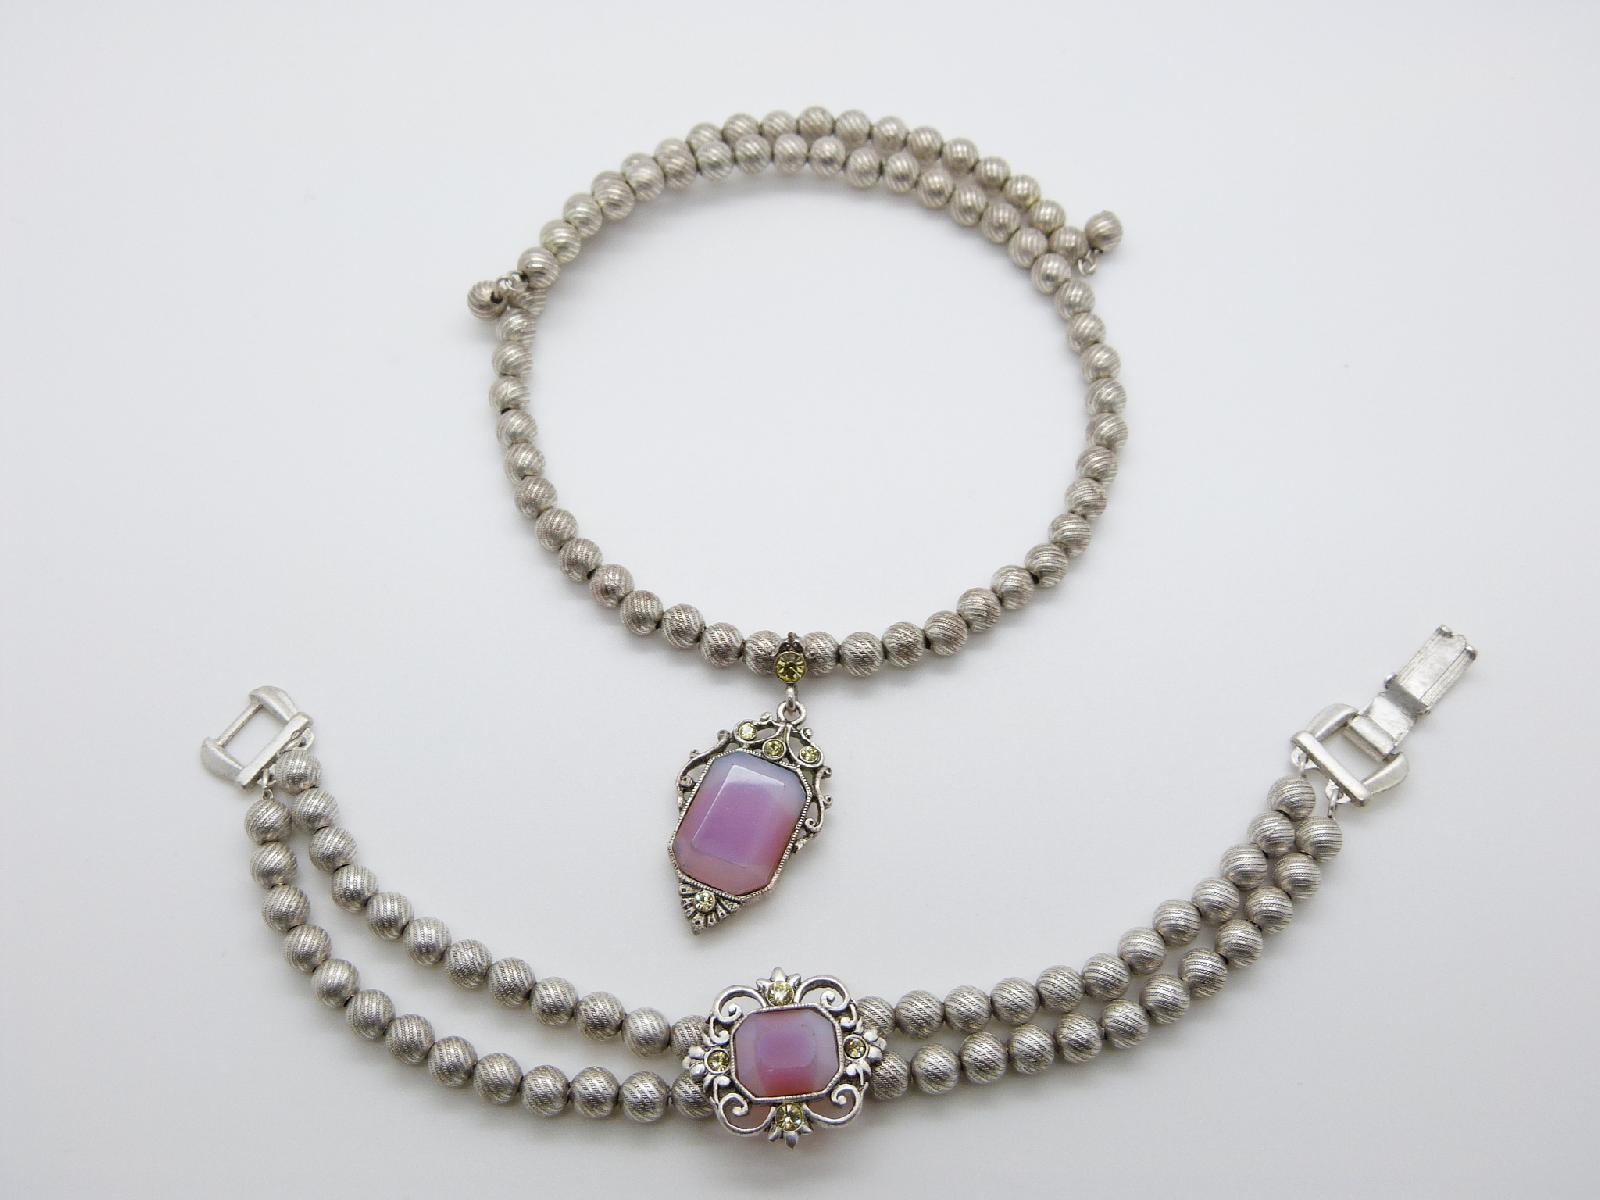 1990s Silver Metal Bead Flexible Choker Opaline Pendant and Bracelet Set